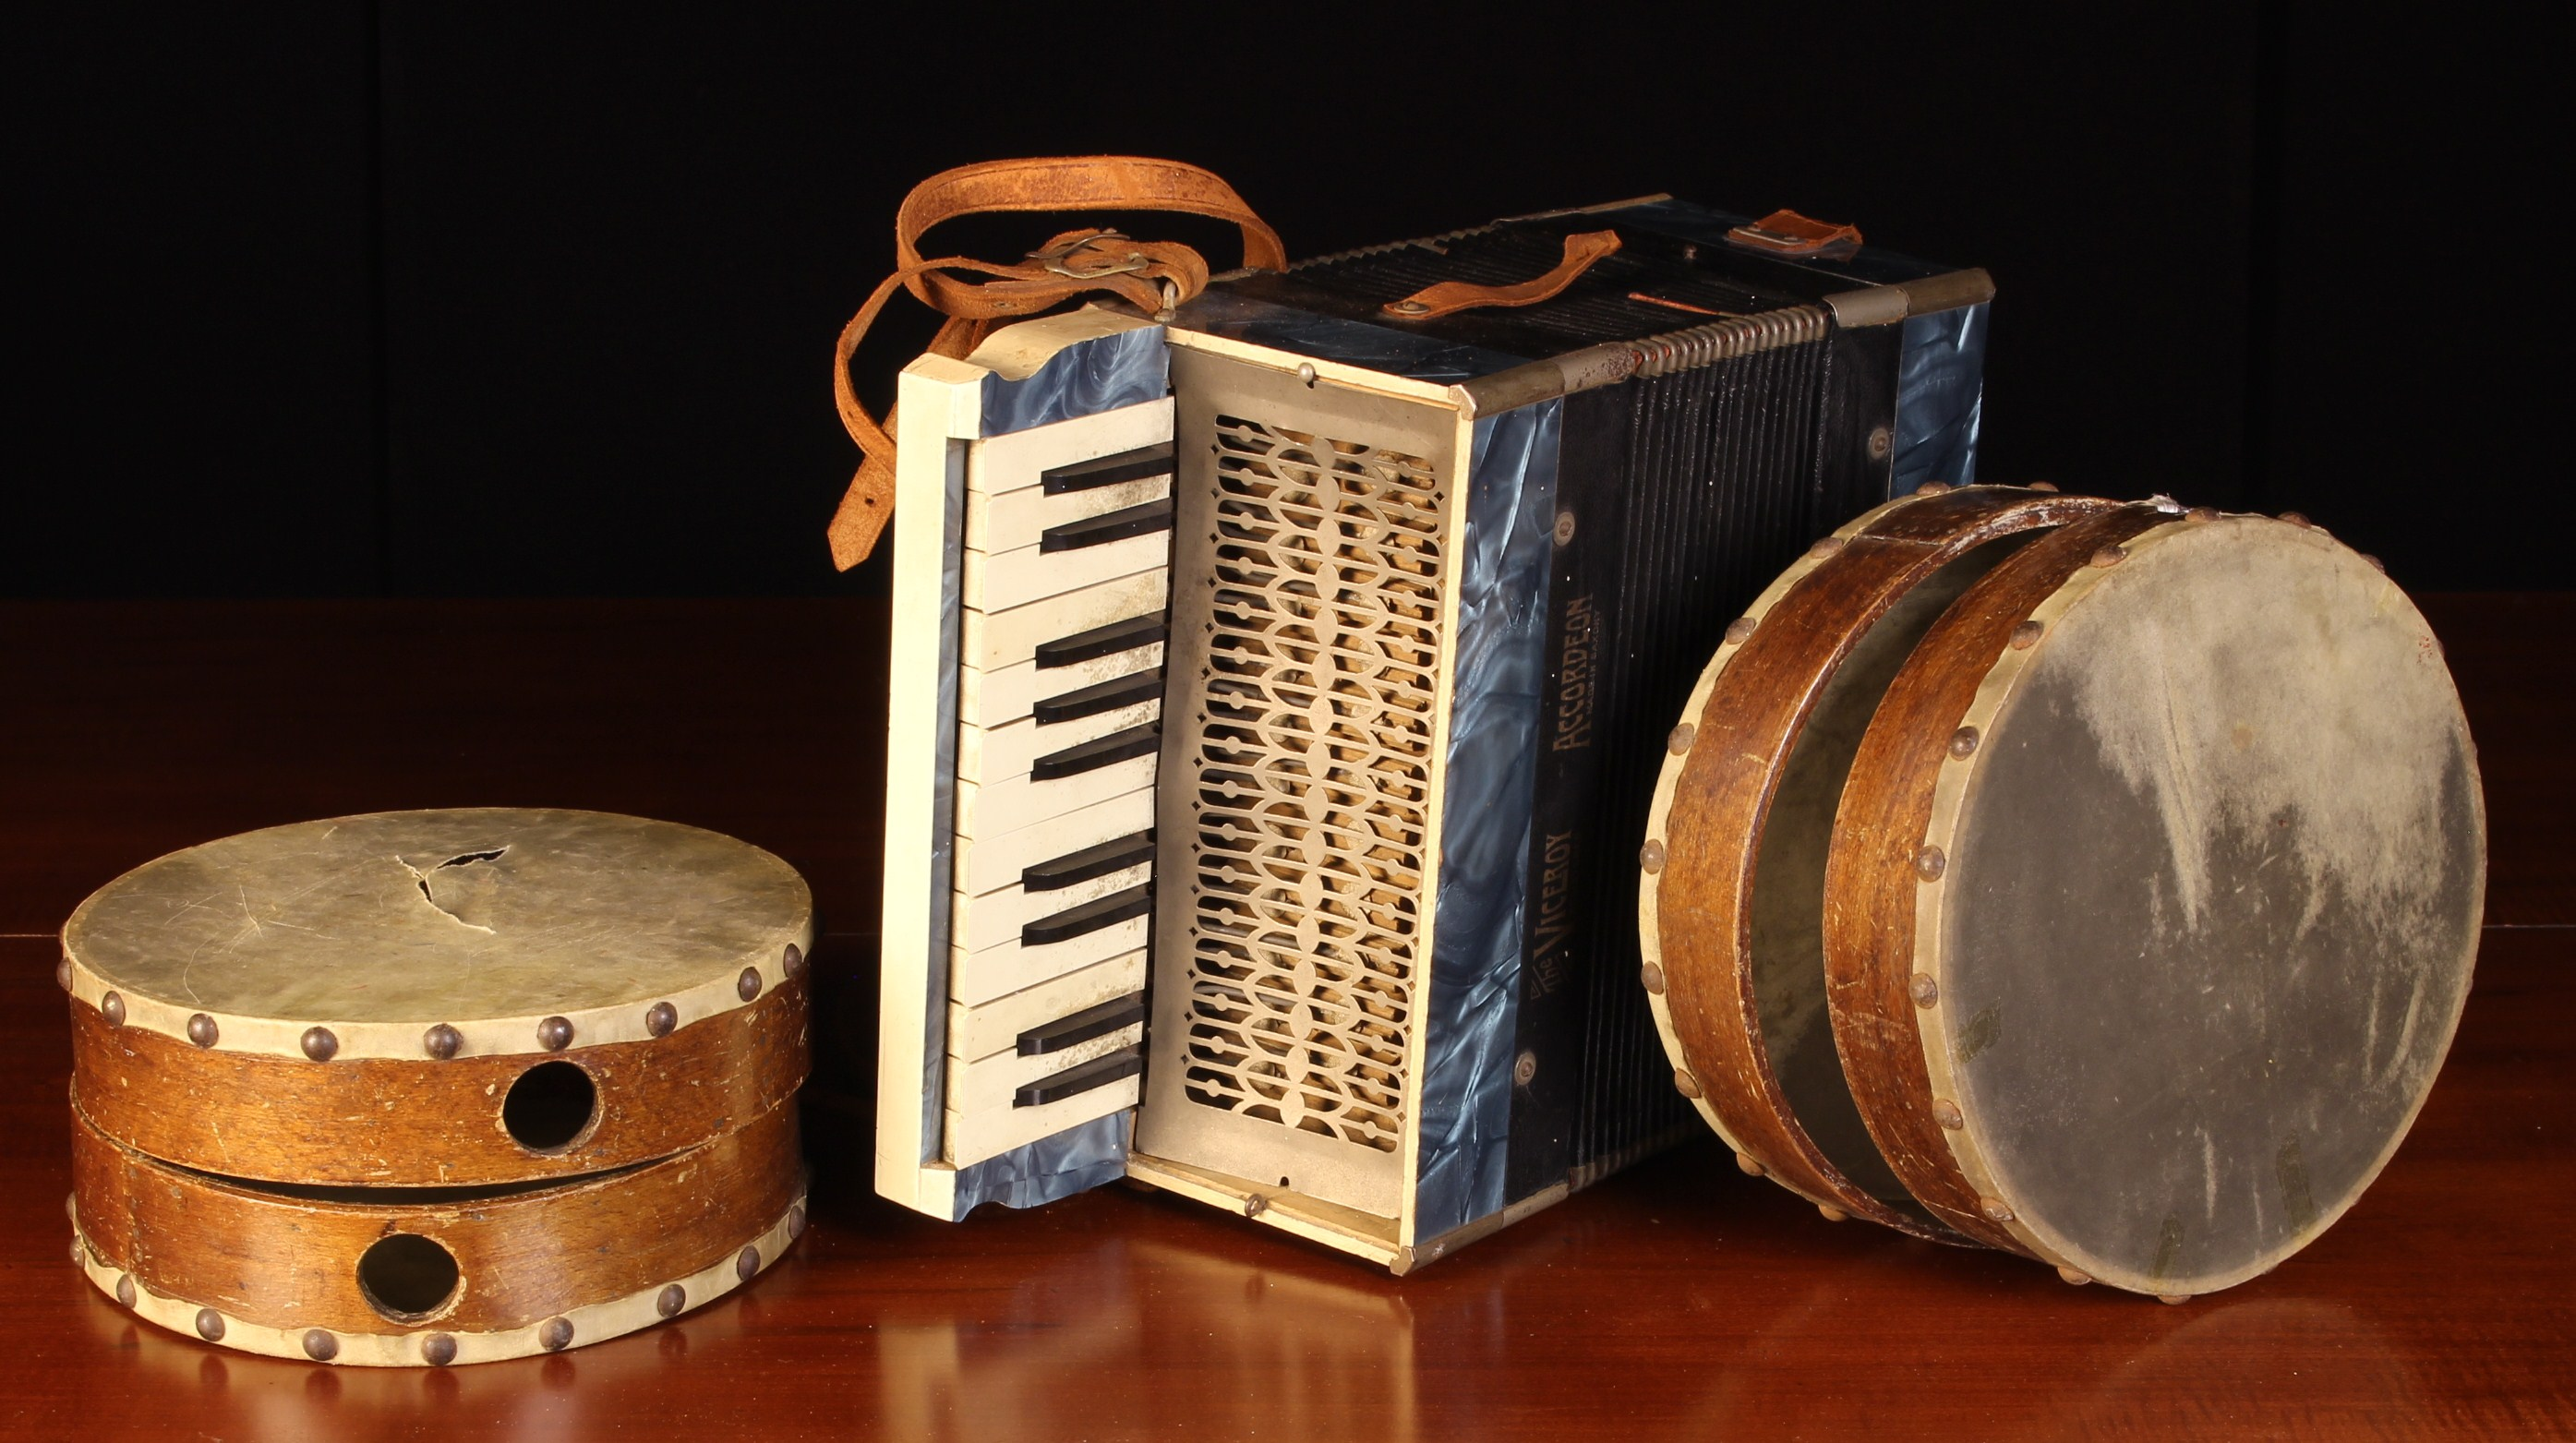 A Vintage Accordion; 'The Viceroy' Junior model, made in Saxony, and four vintage tambourines (A/F). - Image 2 of 3